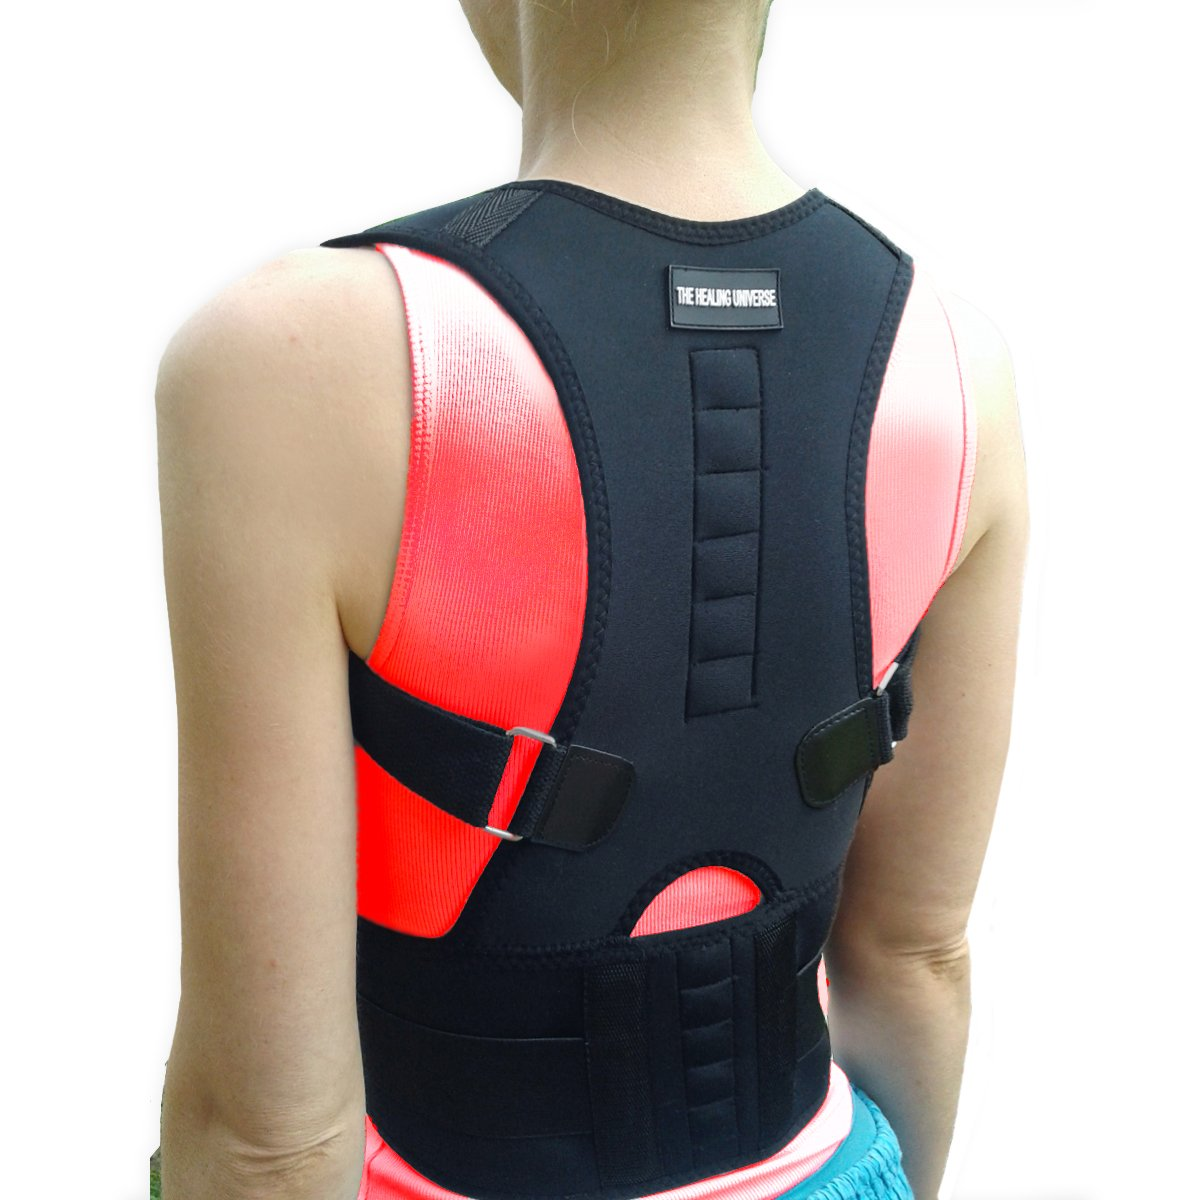 The Healing Universe - Thoracic Back Brace - Best Kyphosis Brace - The Back Brace - Spine and Back Pain Relief with Magnets - Head Forward Posture Corrector for Men and Women (S, Black)